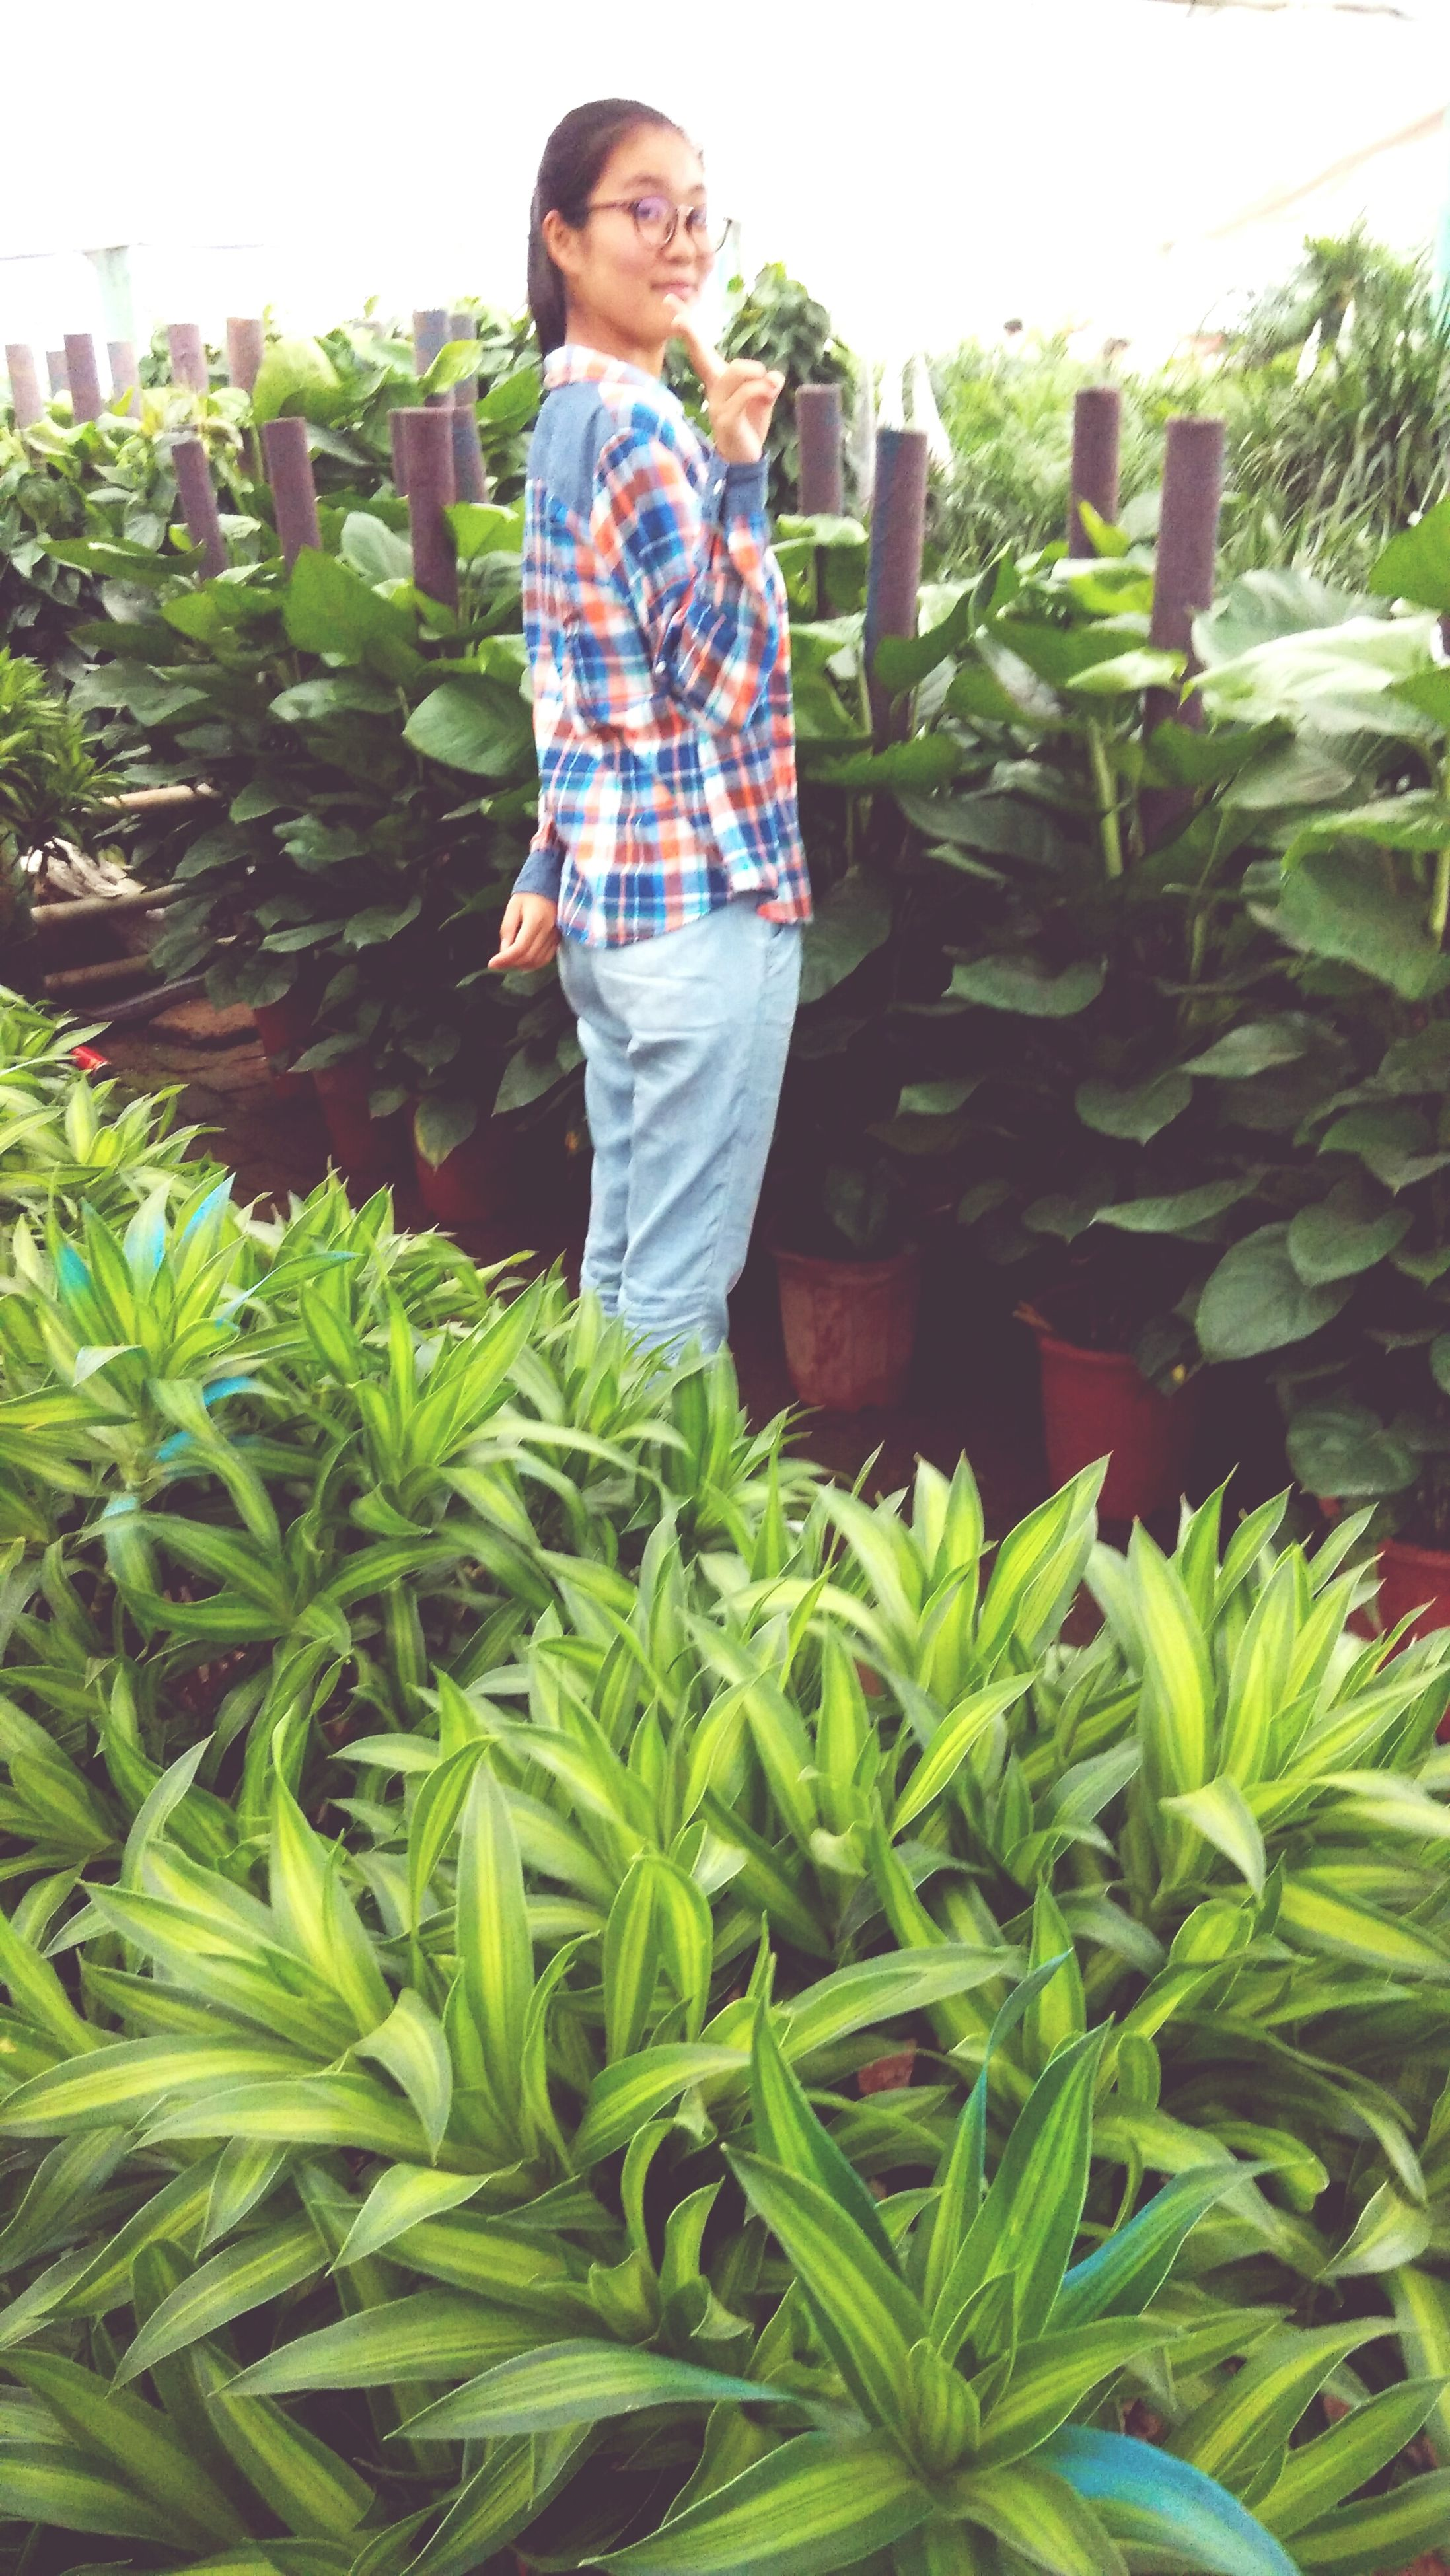 casual clothing, person, childhood, lifestyles, elementary age, leisure activity, full length, boys, green color, standing, plant, front view, cute, innocence, girls, growth, smiling, happiness